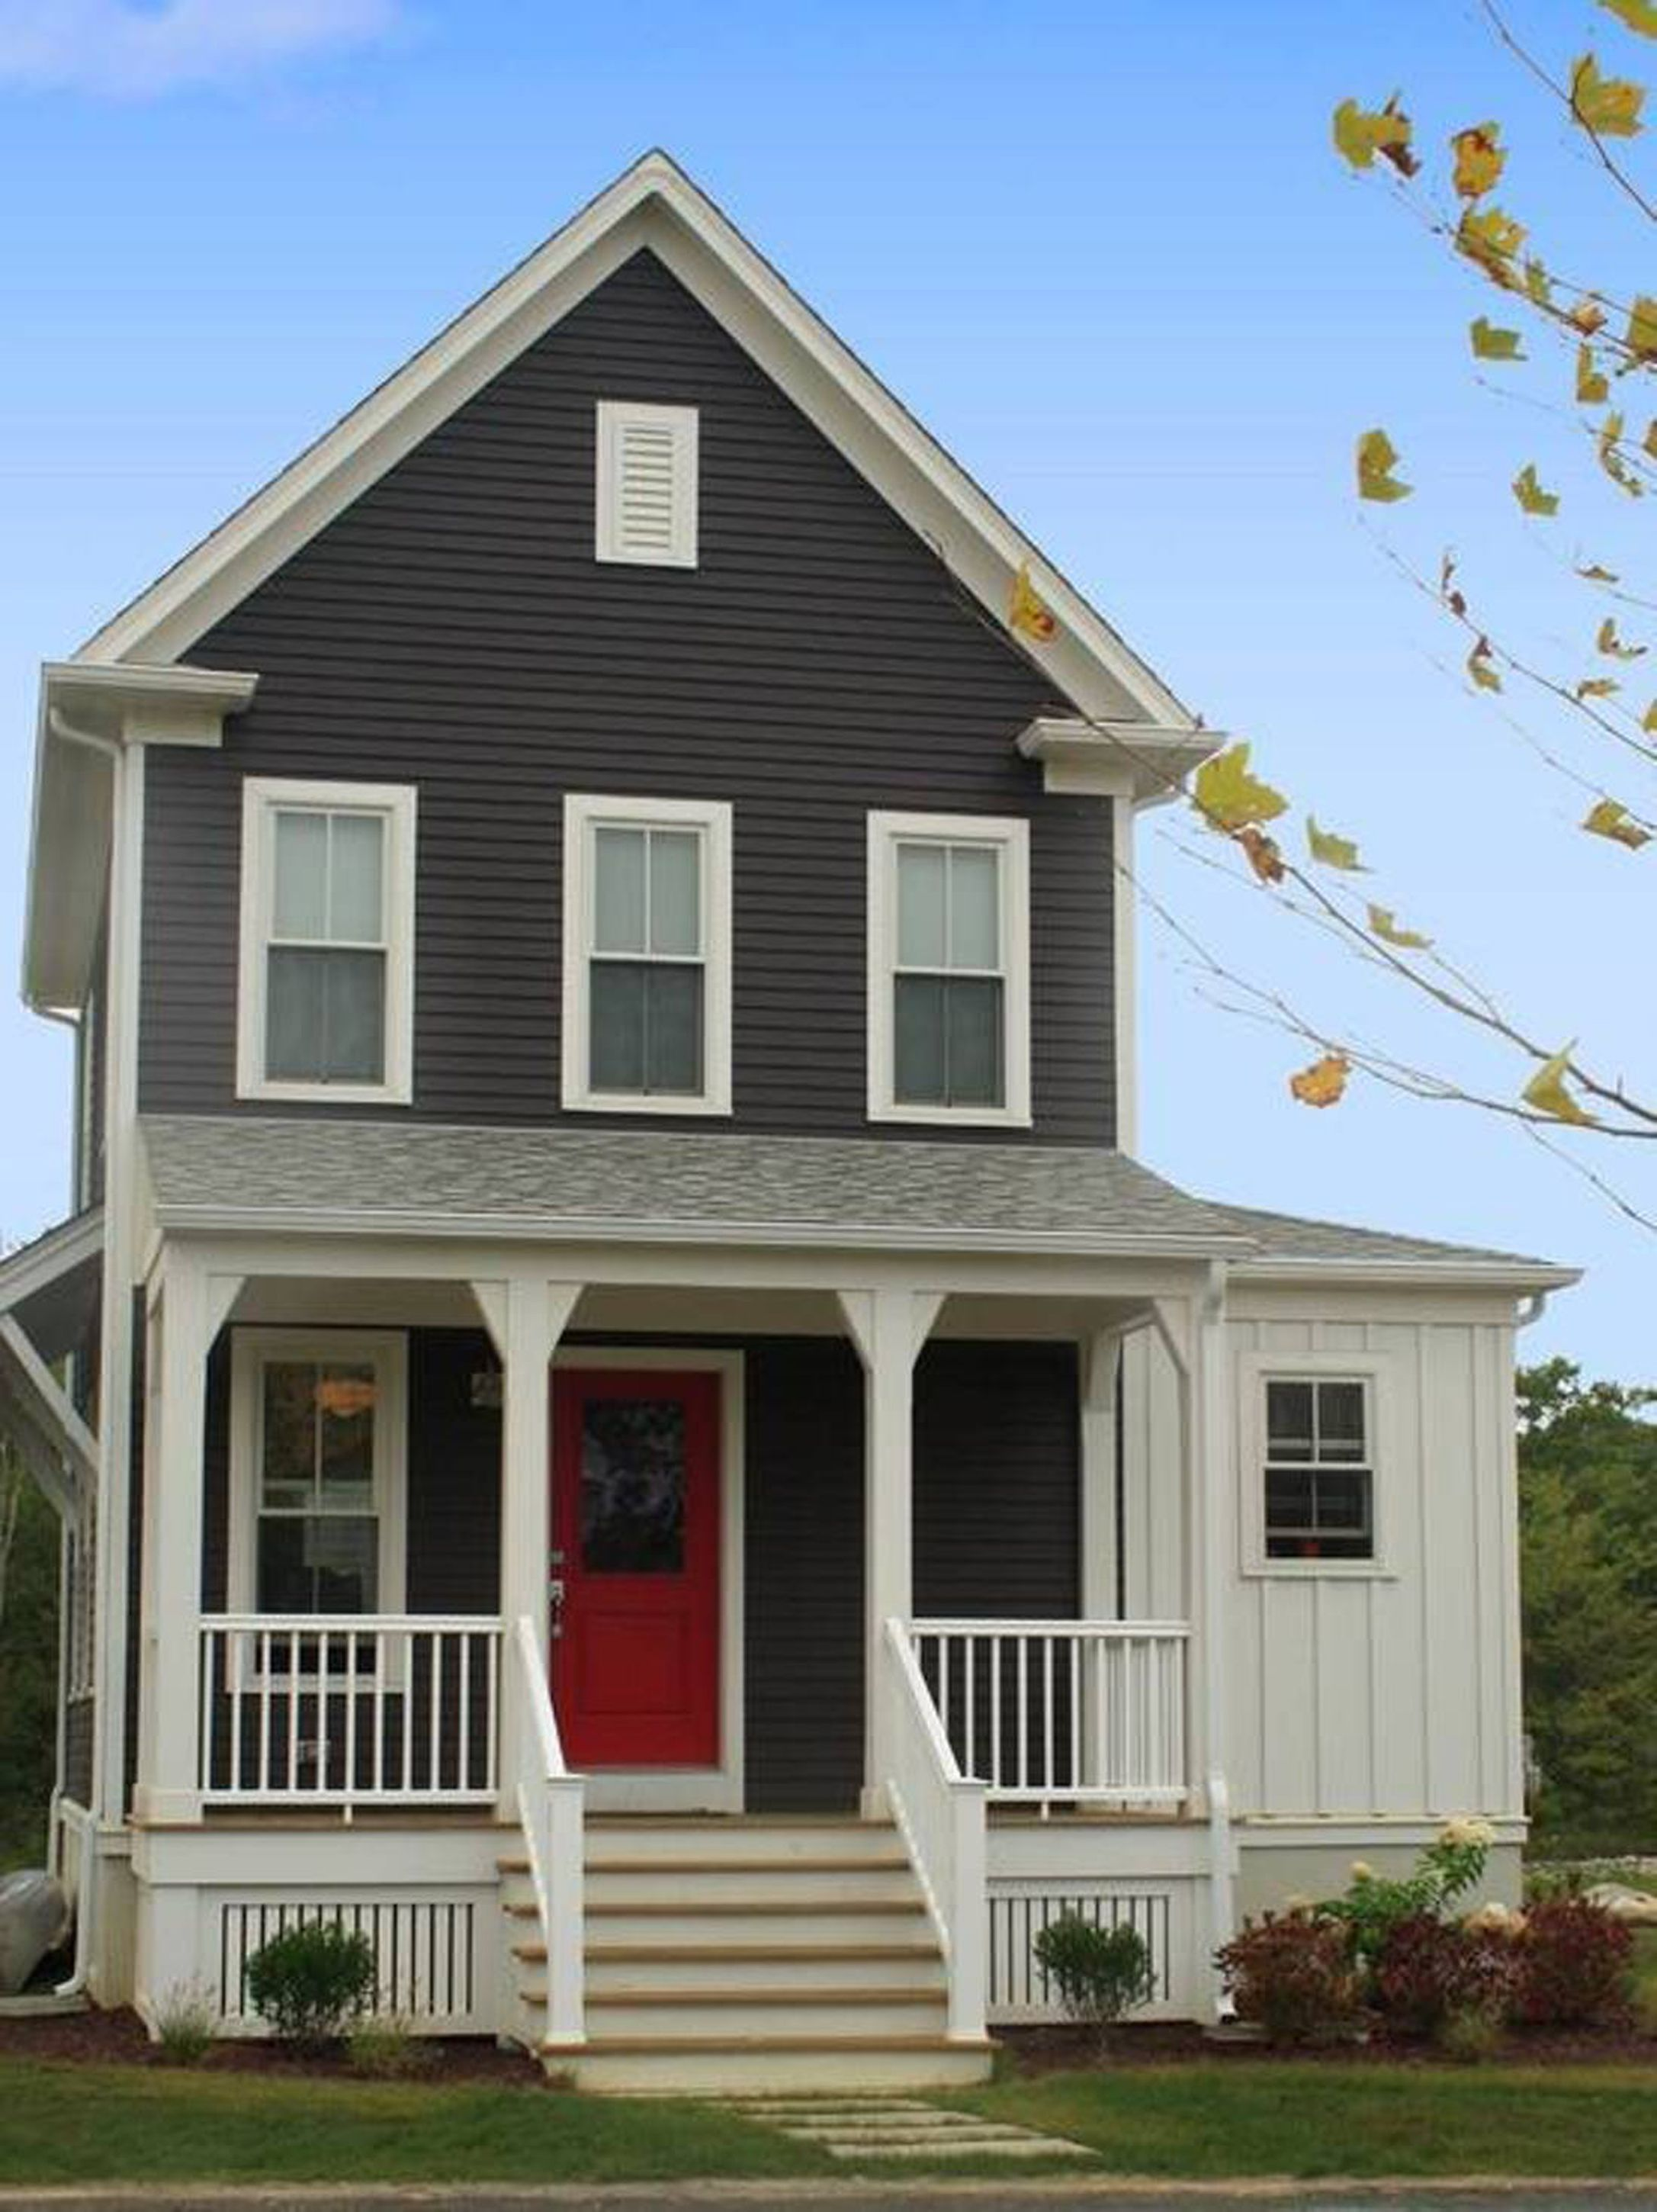 Red Door Grey House delightful gray house exterior paint idea with white window frames